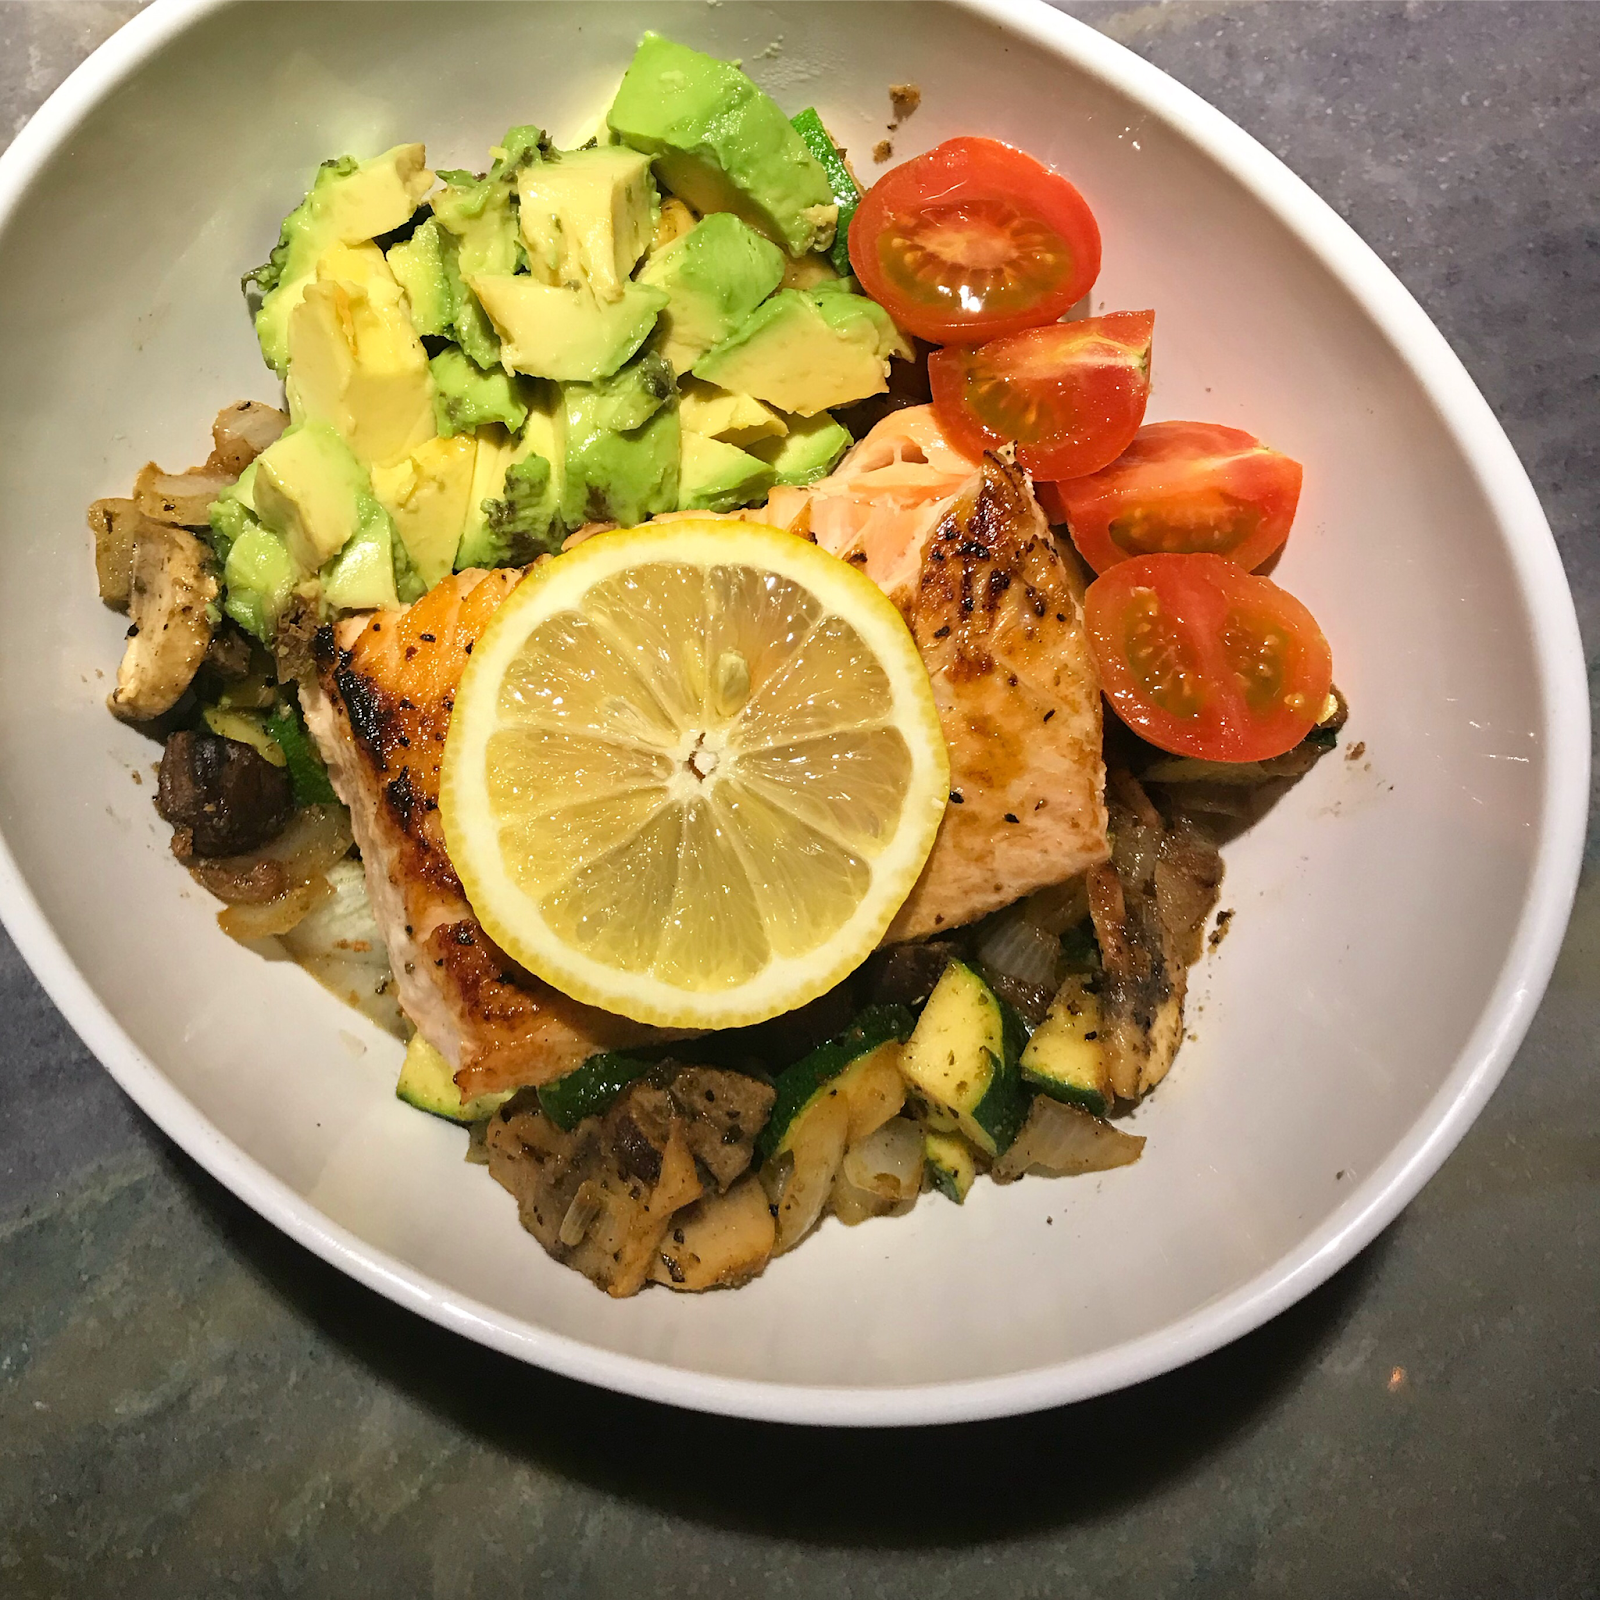 Stir fry topped with 4-5 oz salmon fillet cooked with lemon, avocado and cherry tomatoes!